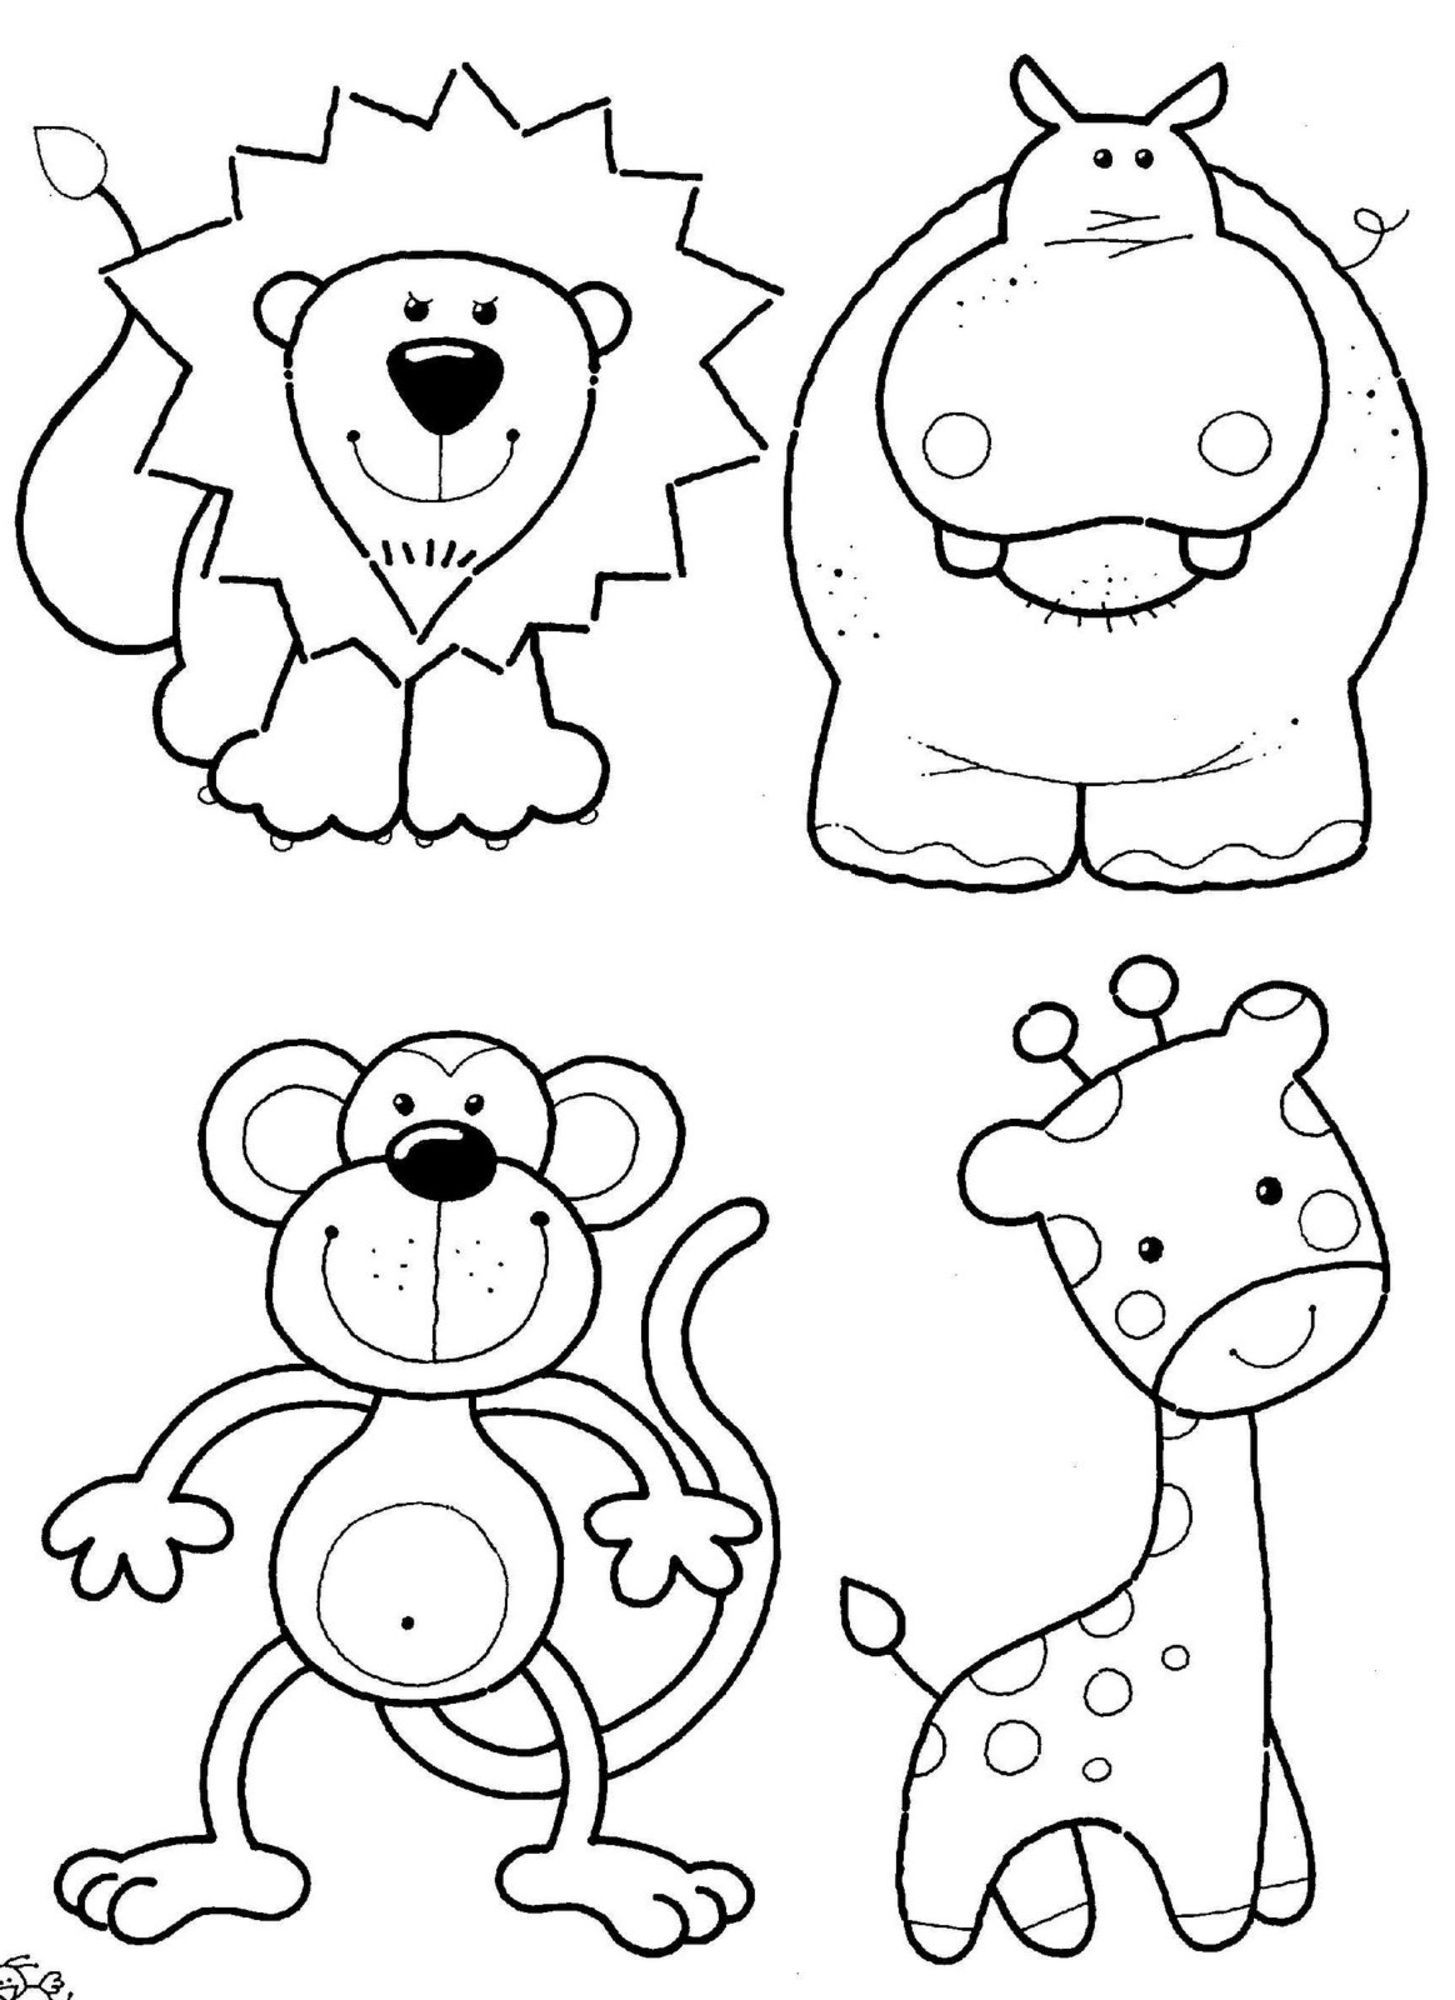 Felt Craft Inspiration Animals For Baby Quilt Already Pinned To My Colour It Sew It T Zoo Animal Coloring Pages Animal Coloring Pages Animal Coloring Books